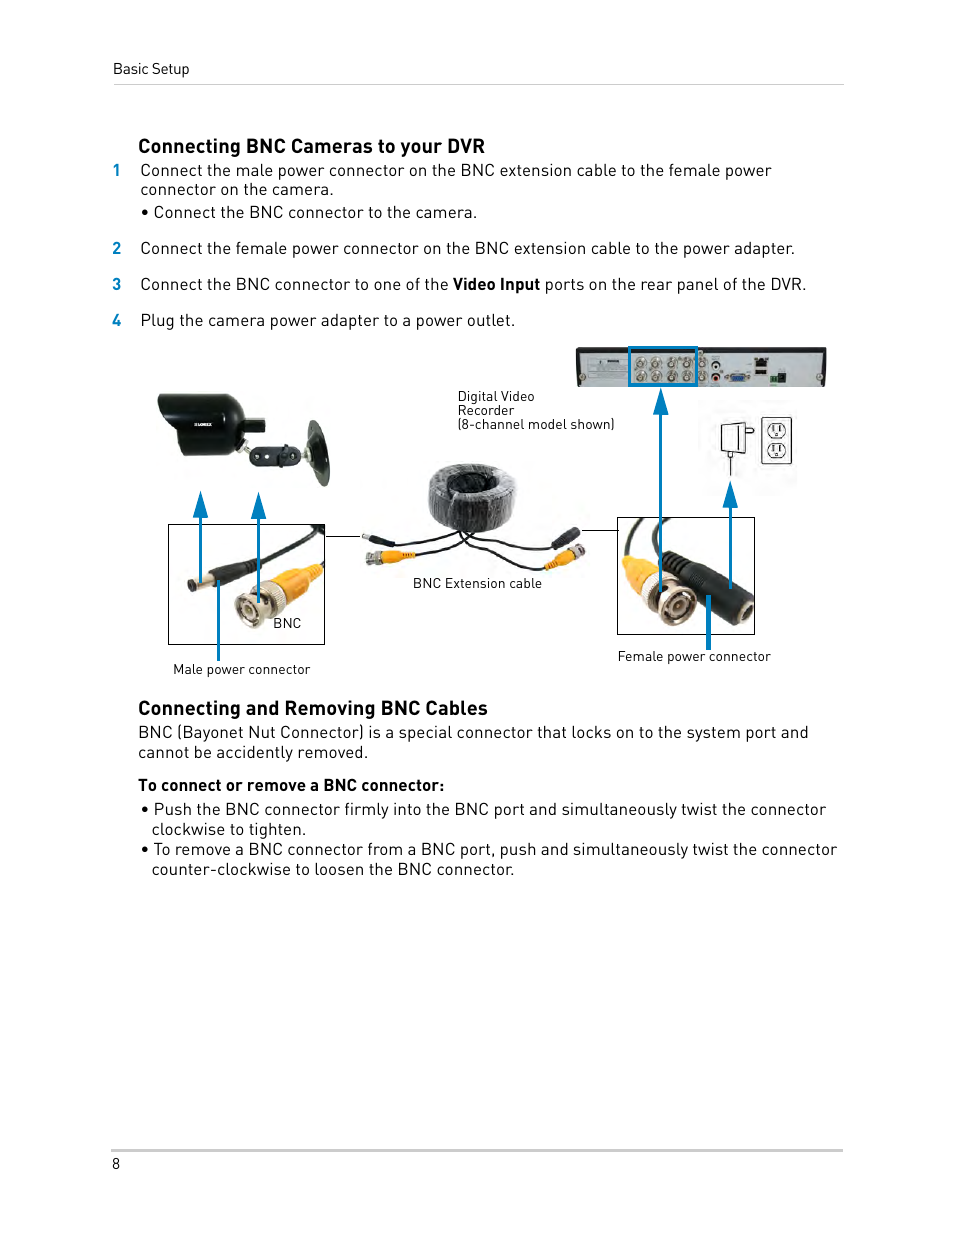 Connecting Bnc Cameras To Your Dvr And Removing Wiring Diagram Cables Lorex Technology Digital Video Surveillance Recorder Lh010 Eco Blackbox Series User